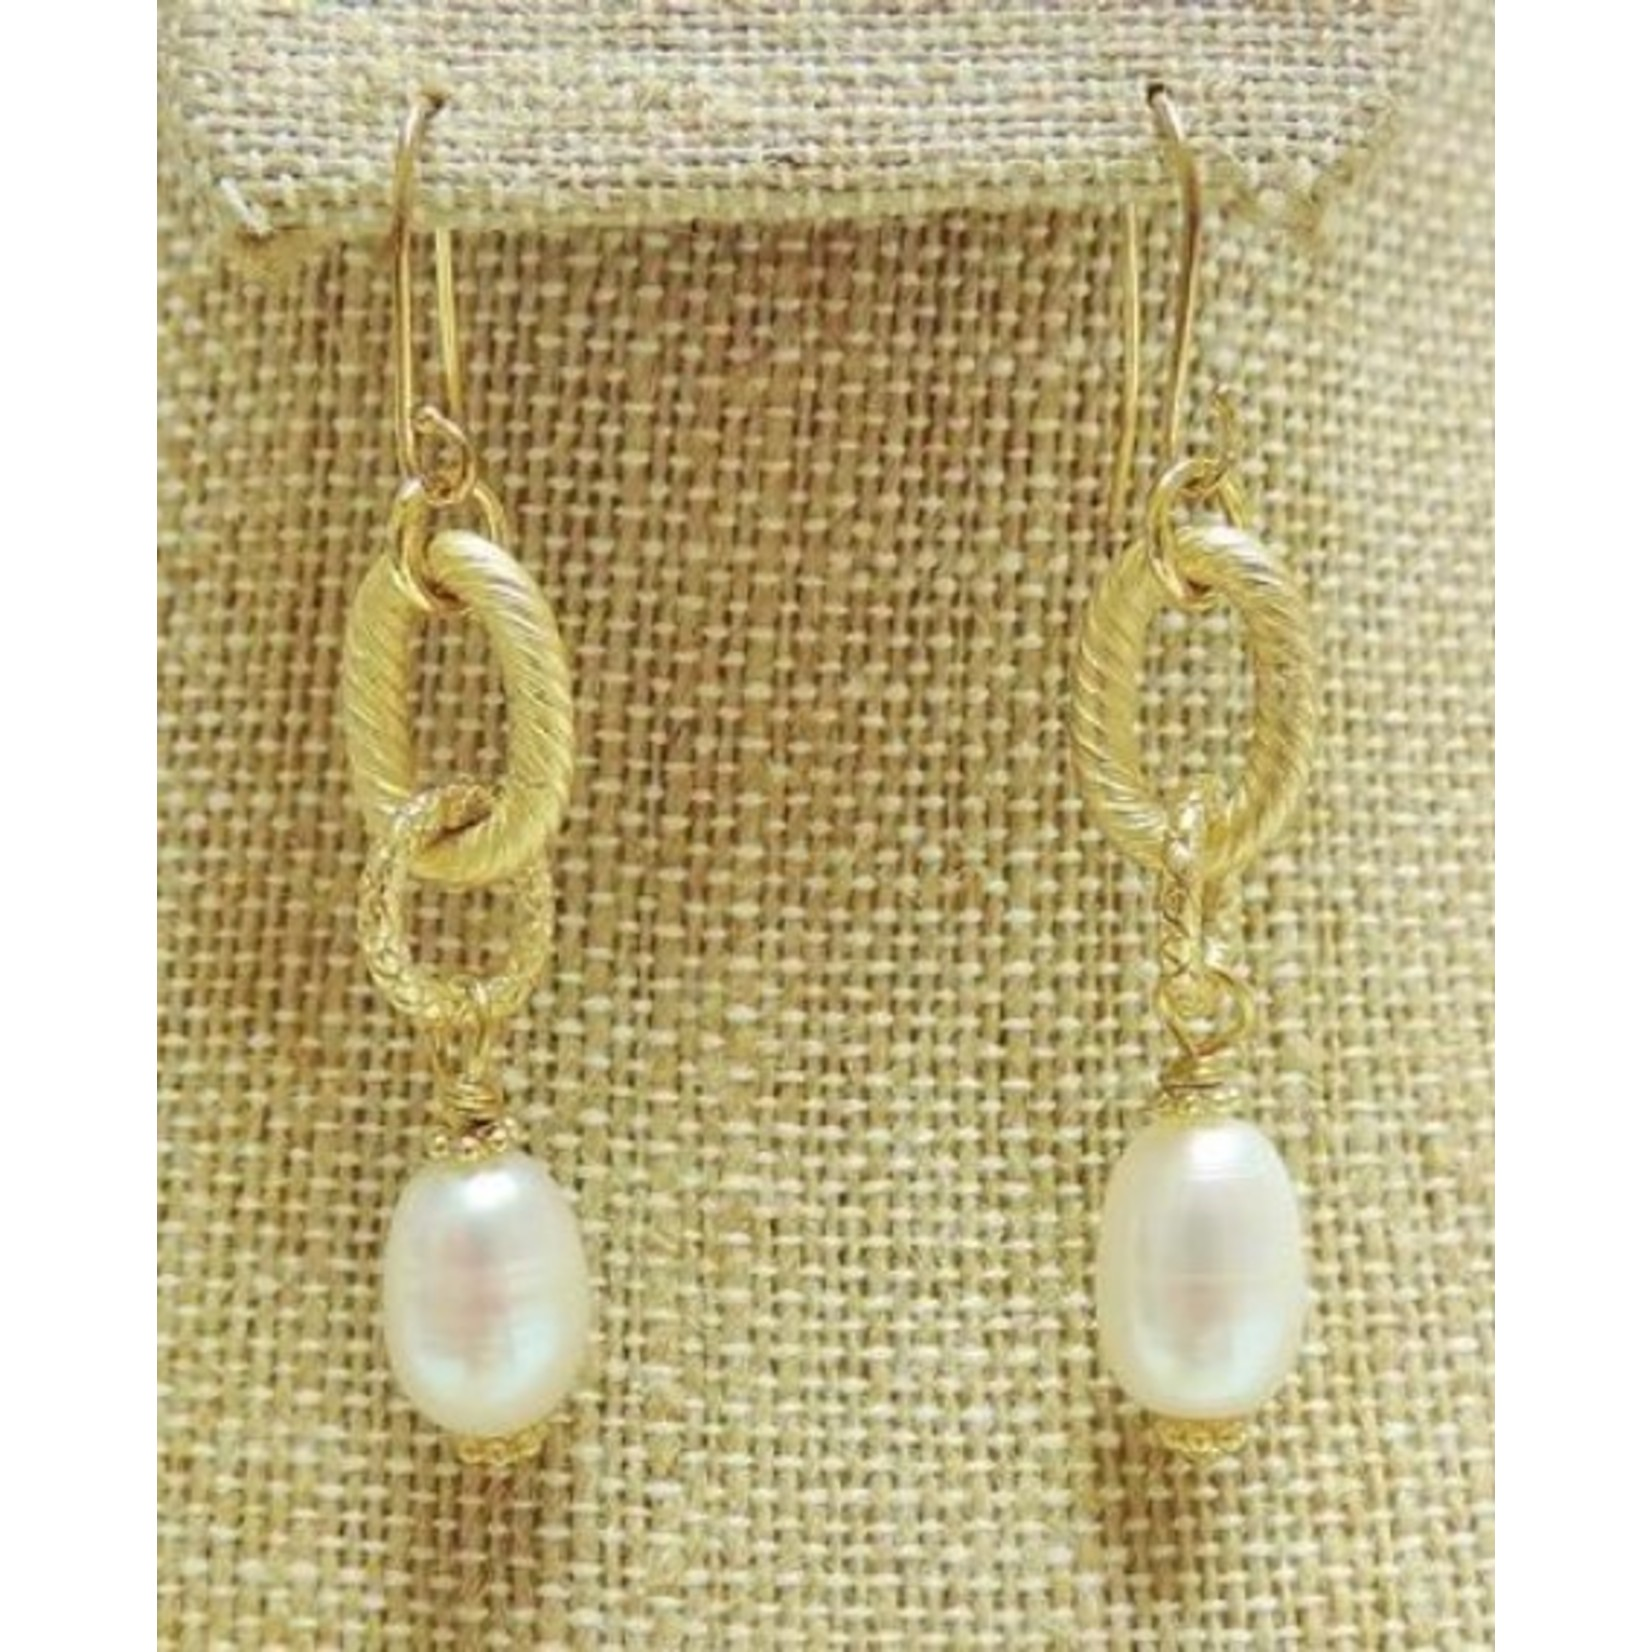 Casuals Fairhope Gold Ring and Pearl Earring